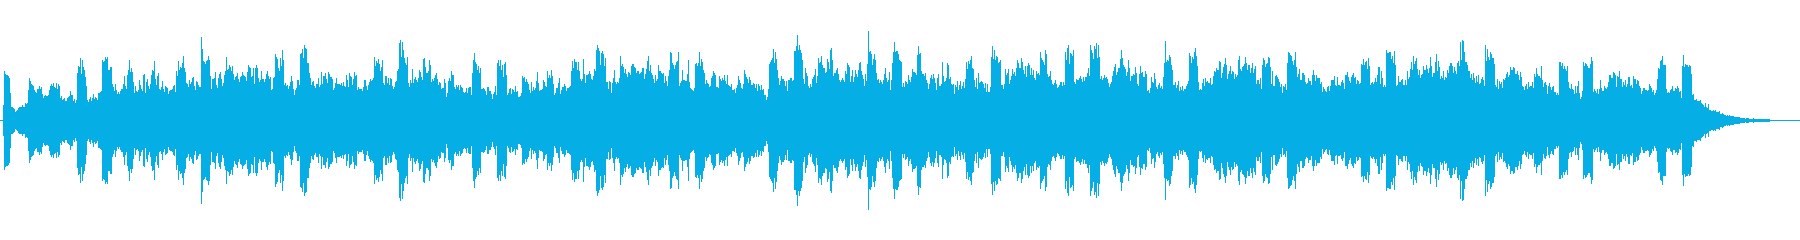 Magnificent jingle's reproduced waveform